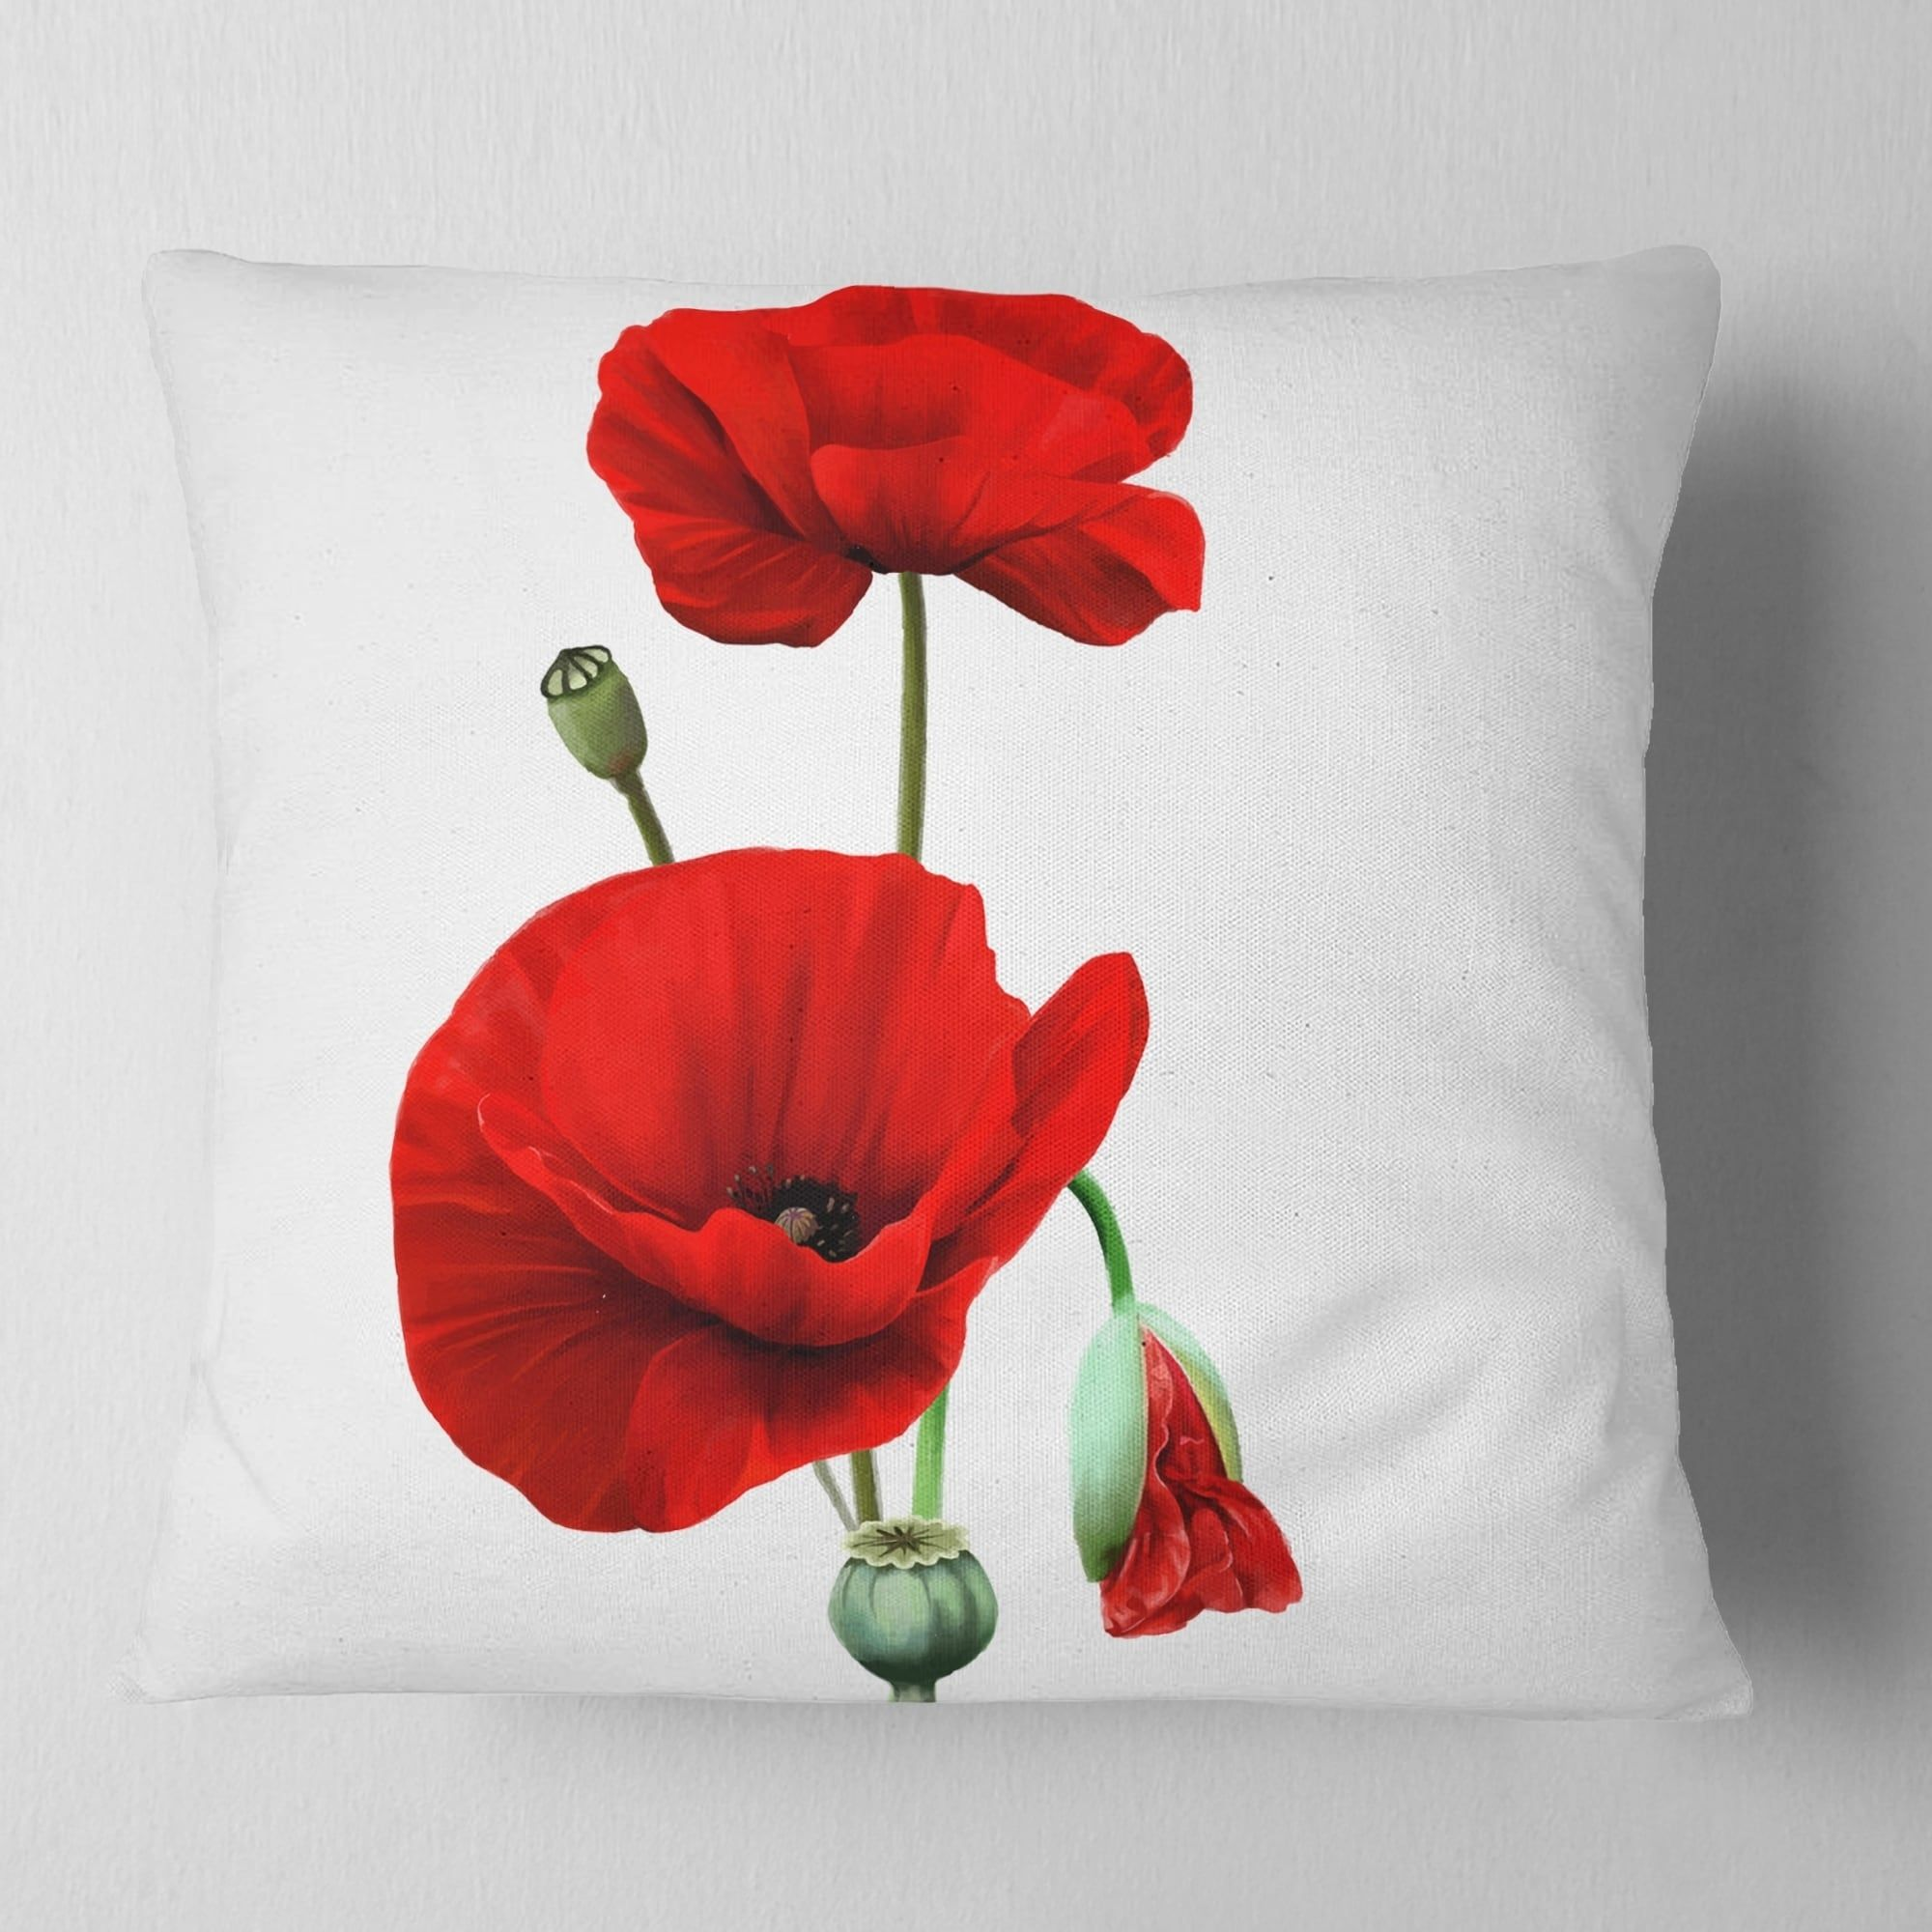 Overstock Com Online Shopping Bedding Furniture Electronics Jewelry Clothing More In 2021 Floral Throw Pillows Pink Painting Red Poppies